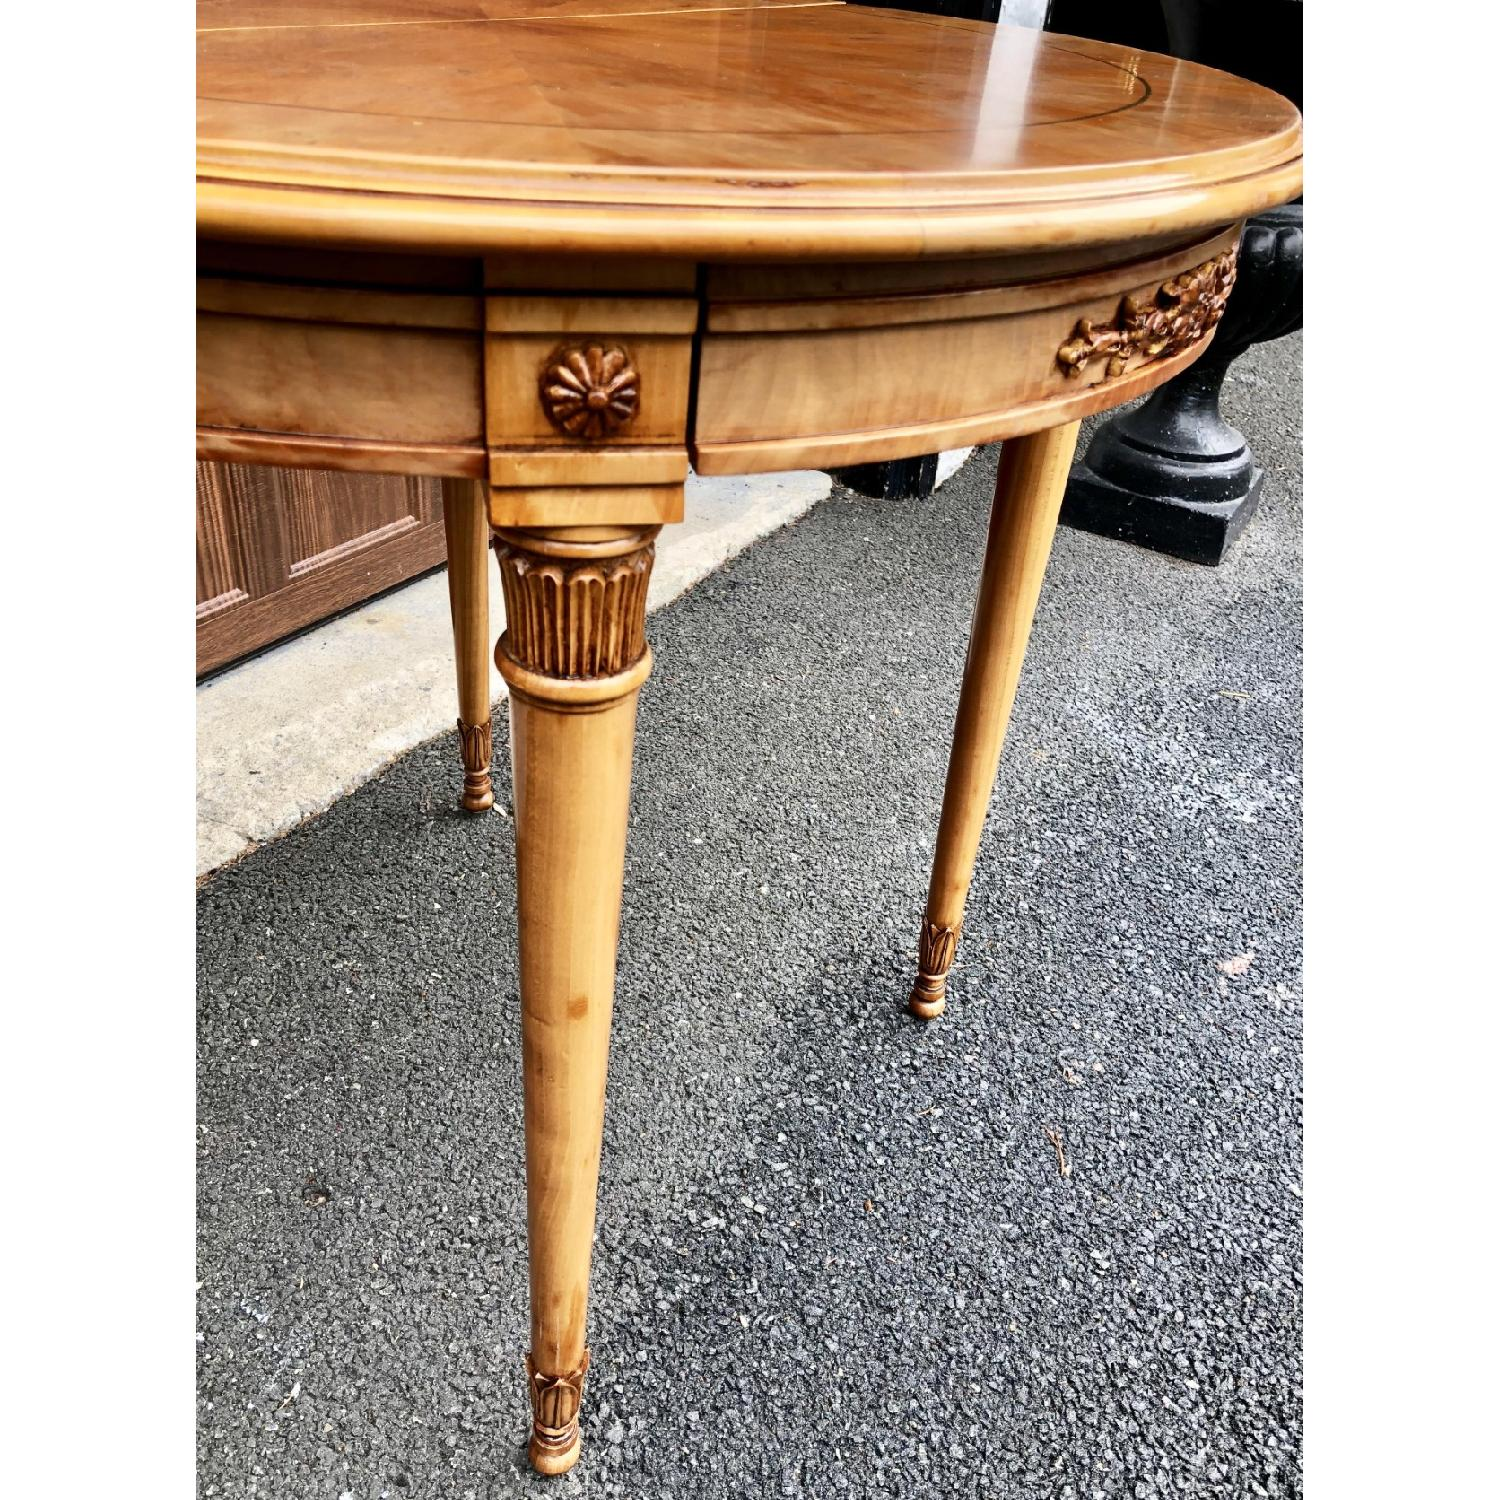 Italian Neoclassical Small Dining/Side Table